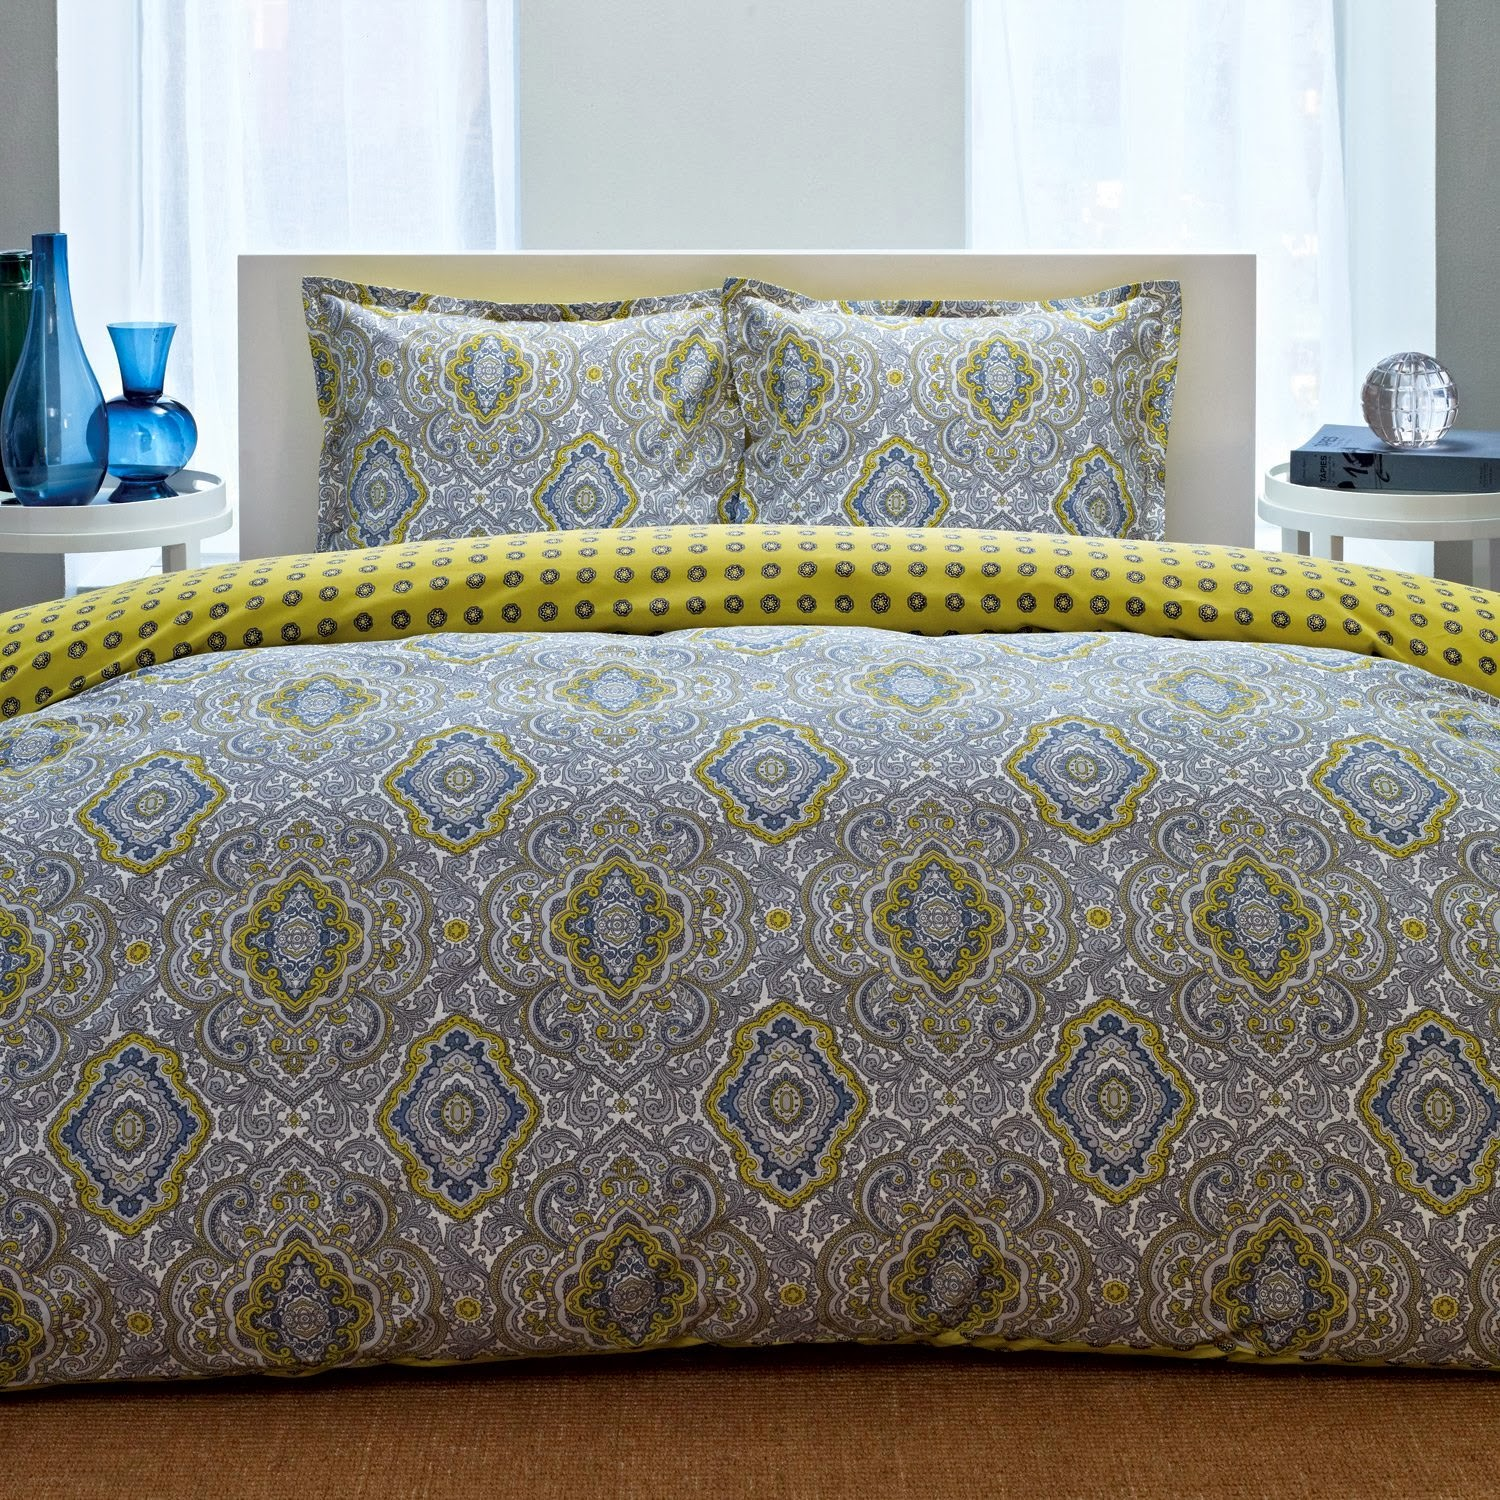 best grey and yellow bedding sets – ease bedding with style - city scene milan comforter set king